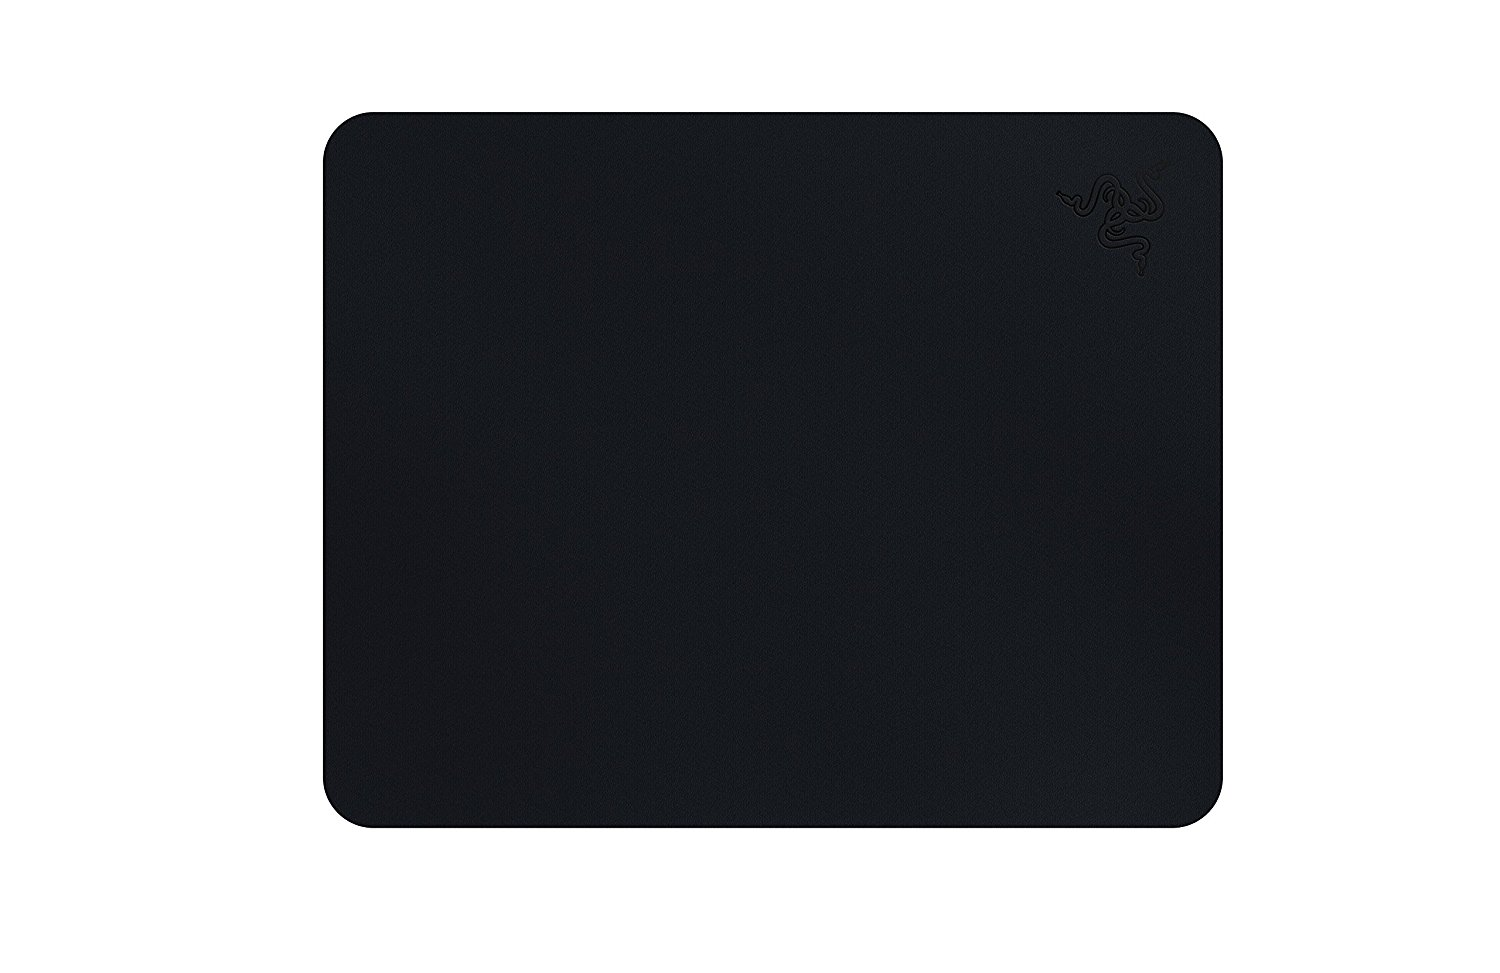 Razer: Goliathus Mobile Stealth Edition Micro-Texture Gaming Mouse Pad (Mat Black)